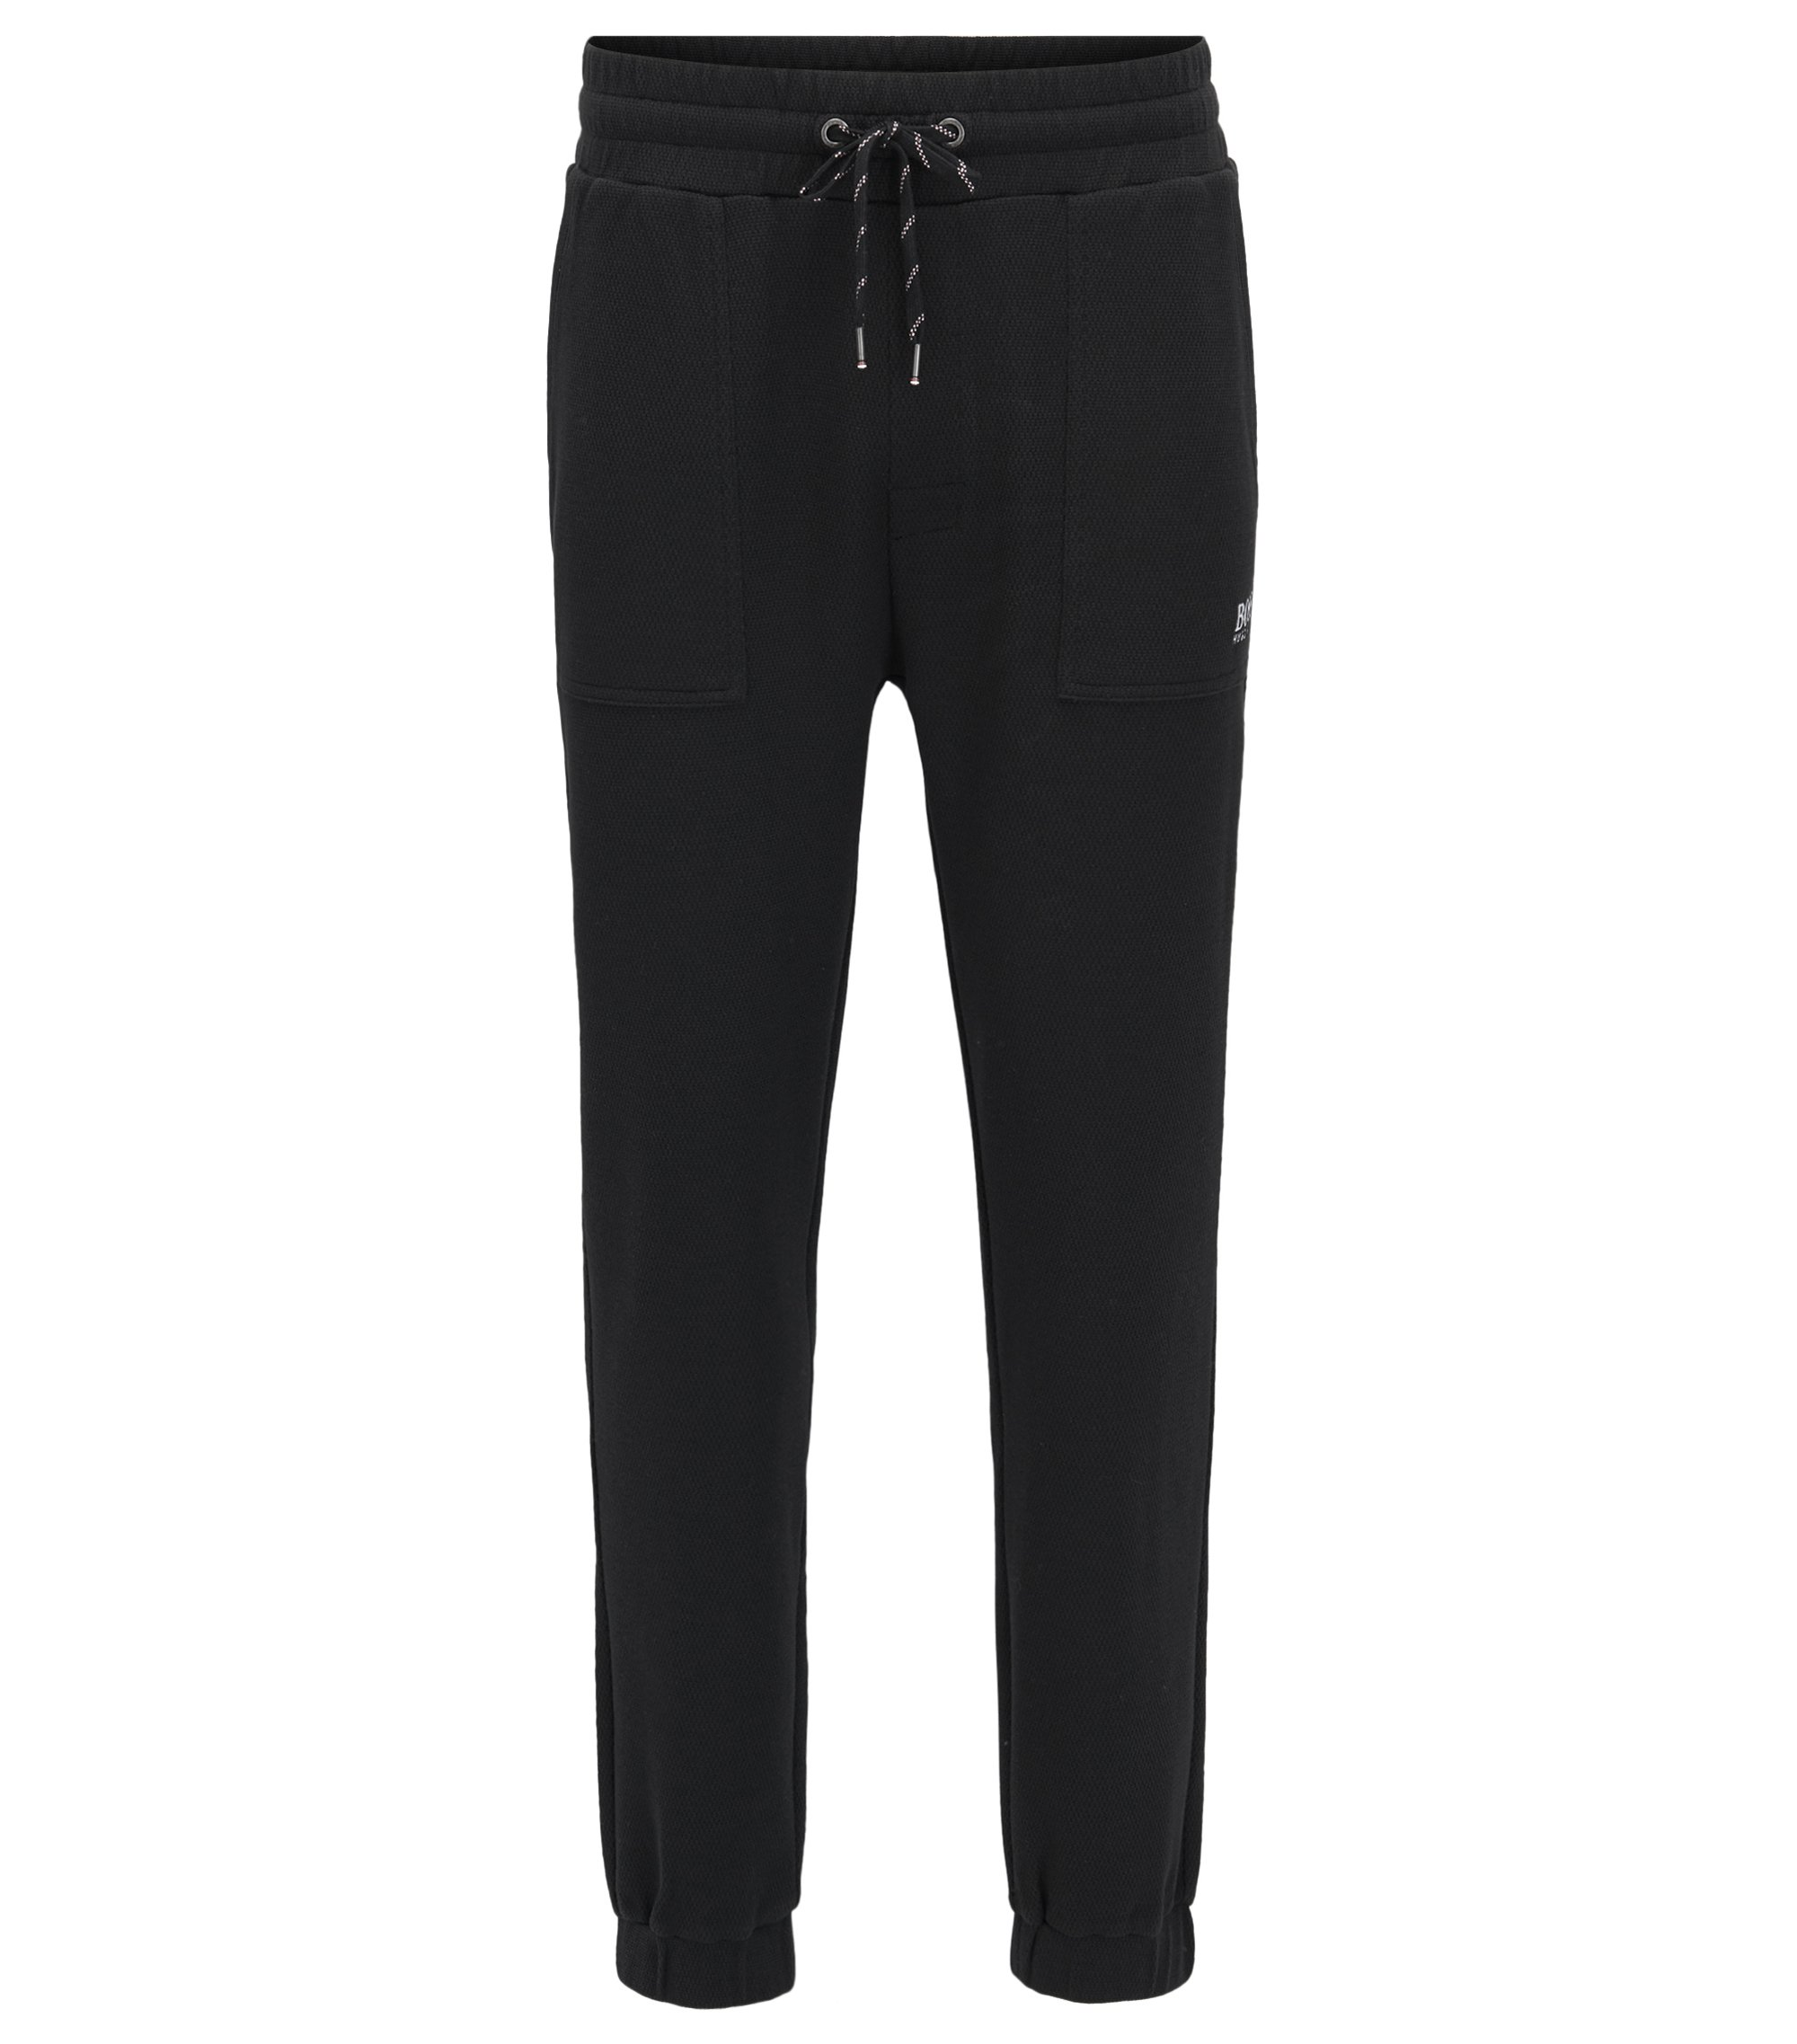 Jersey Blend Sweatpant | Contemp Pants, Black